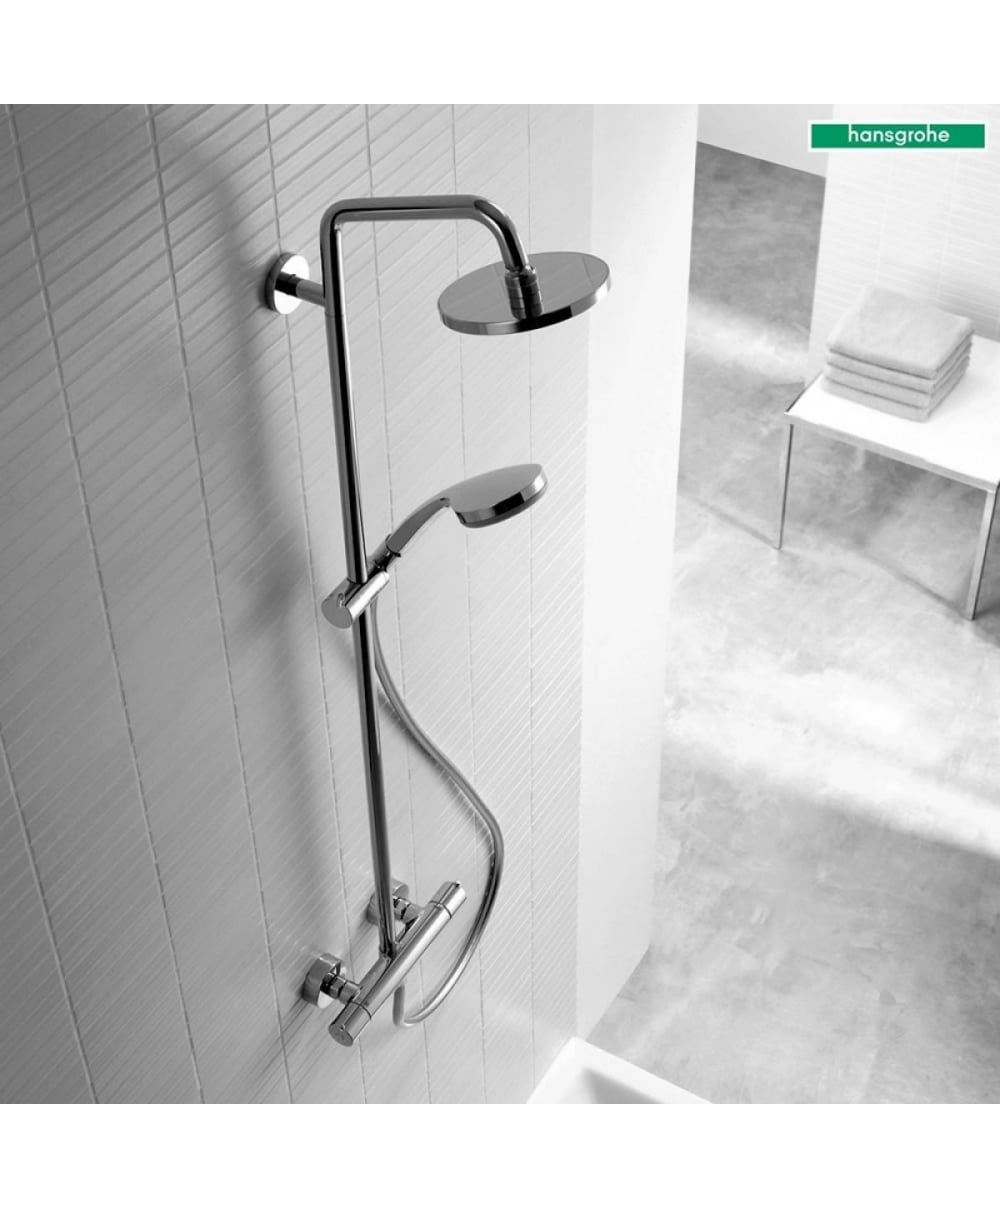 Home showers shower multi sets hansgrohe hansgrohe